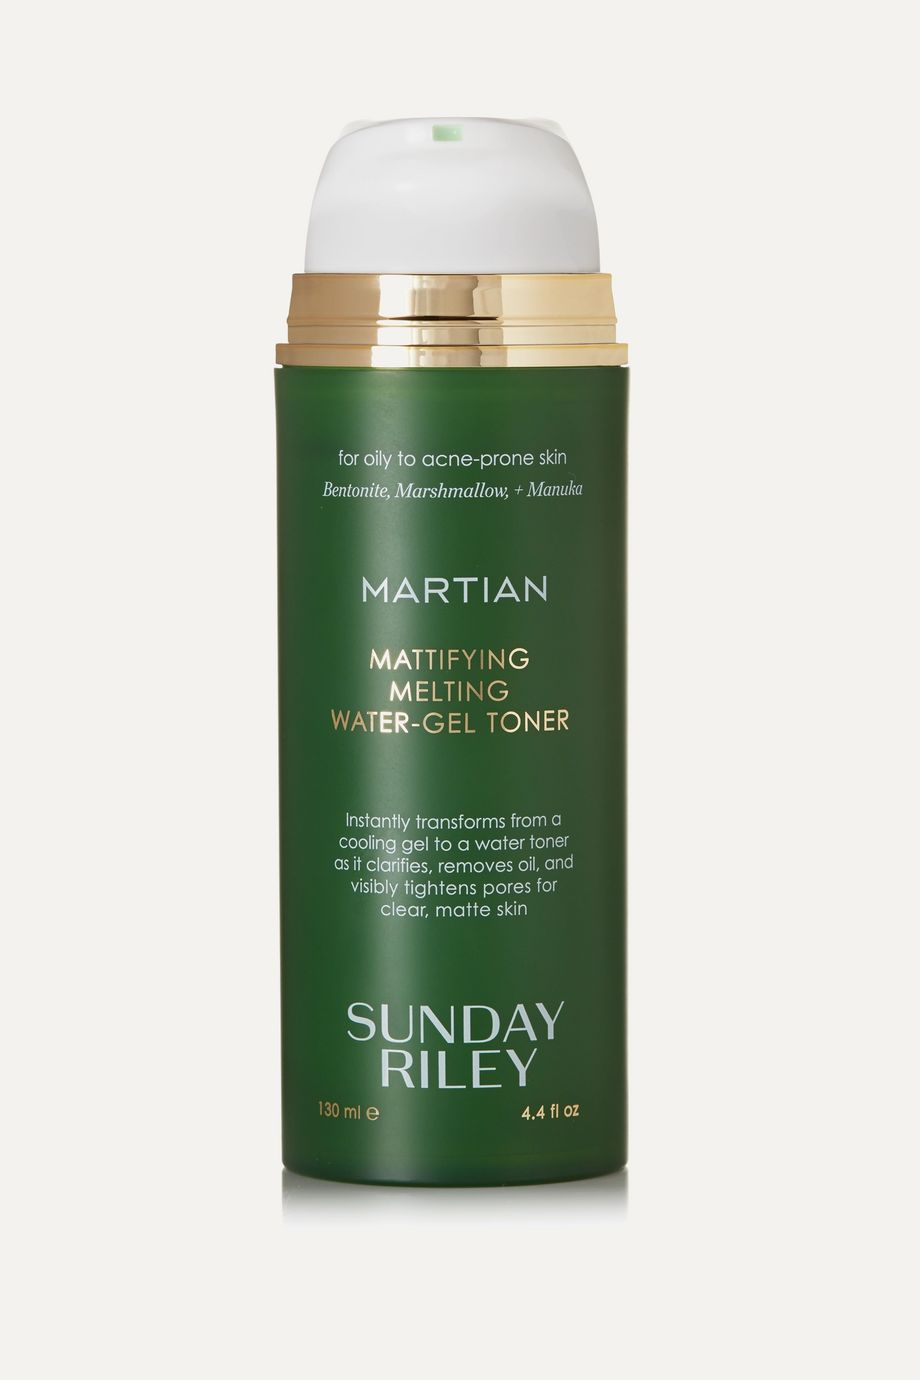 Sunday Riley Martian Mattifying Melting Water-Gel Toner, 130ml